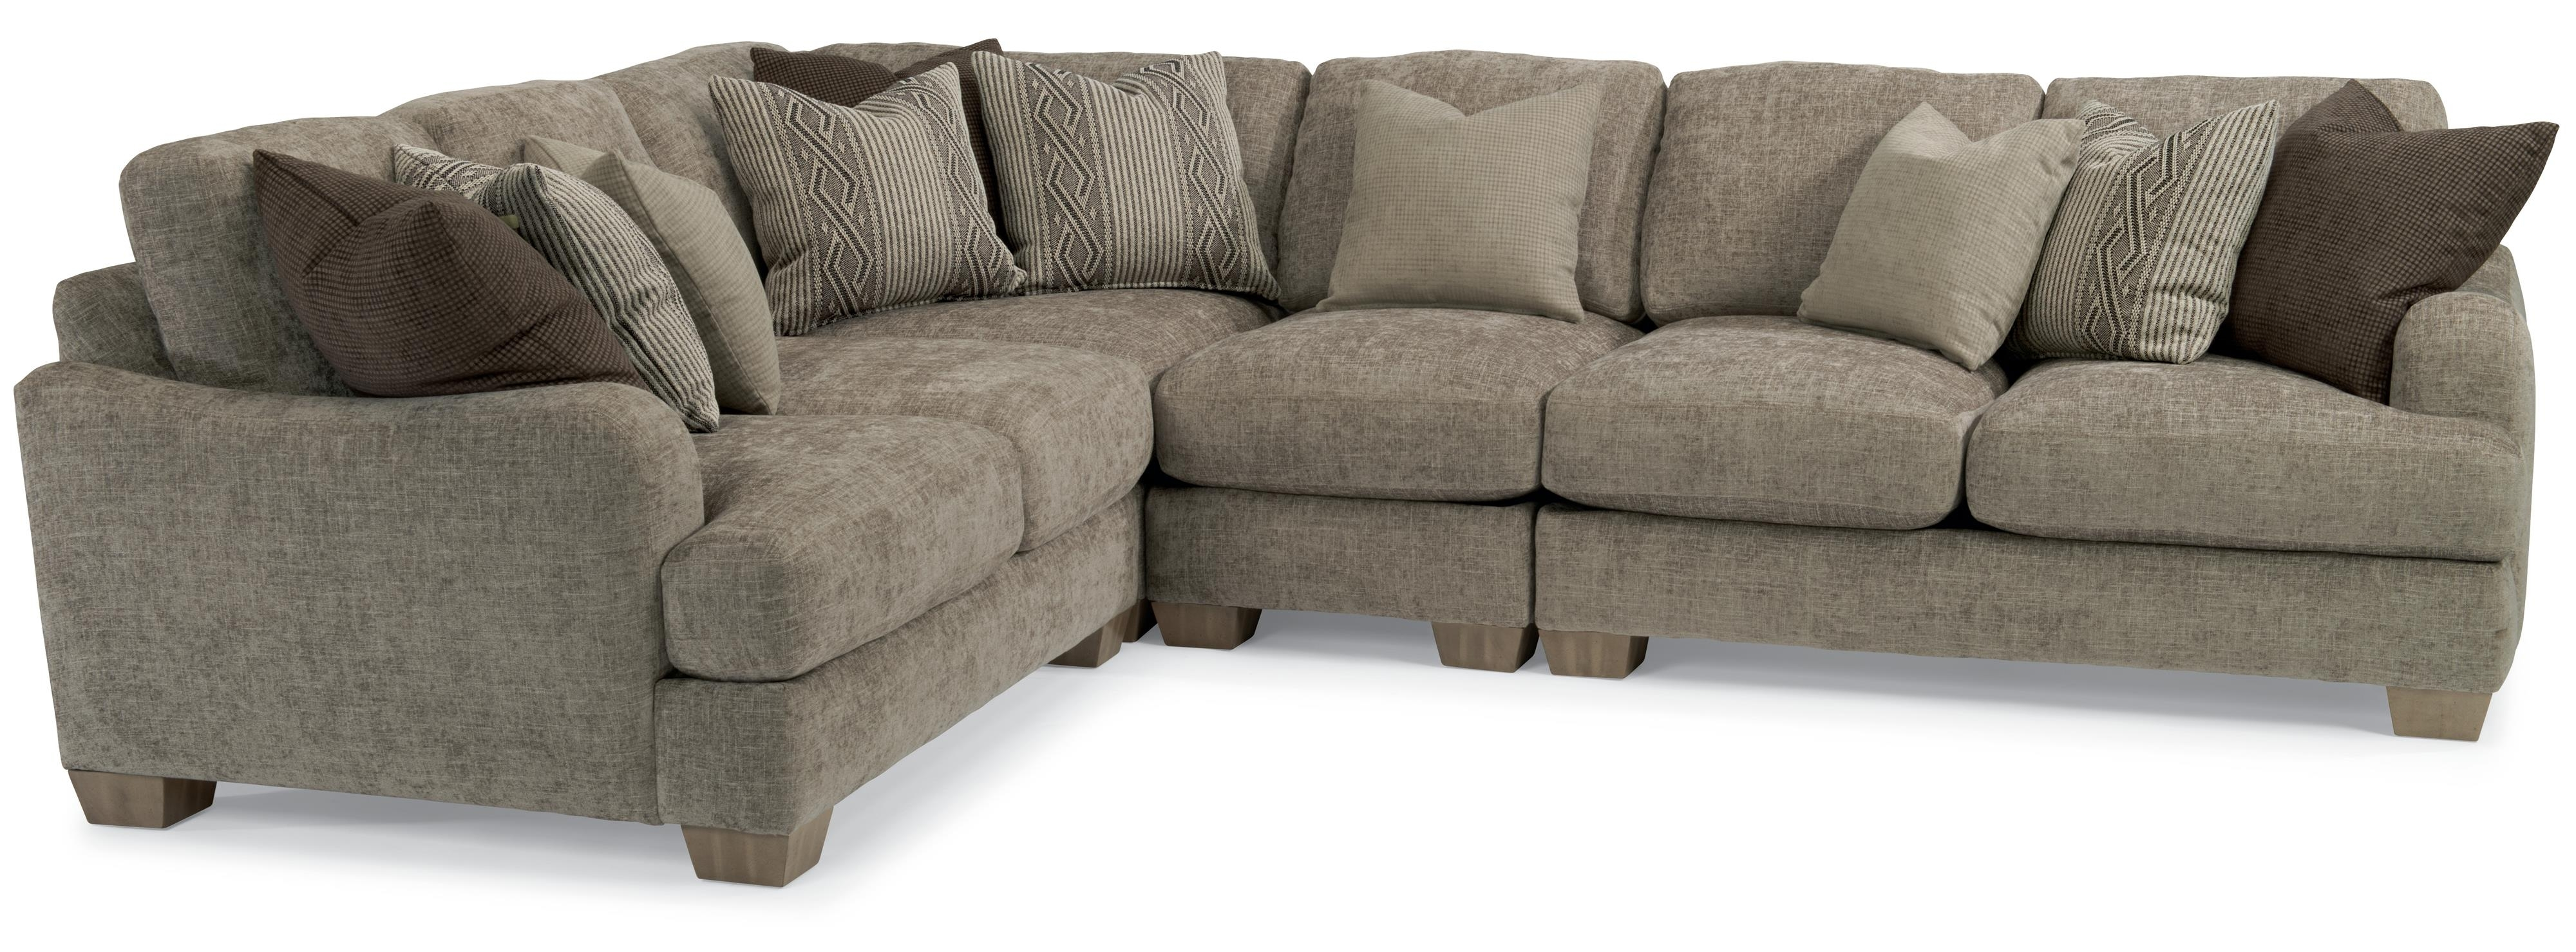 Vanessa Sectional Sofa With Loose Pillow Backflexsteel | Living Intended For Johnson City Tn Sectional Sofas (Image 10 of 10)